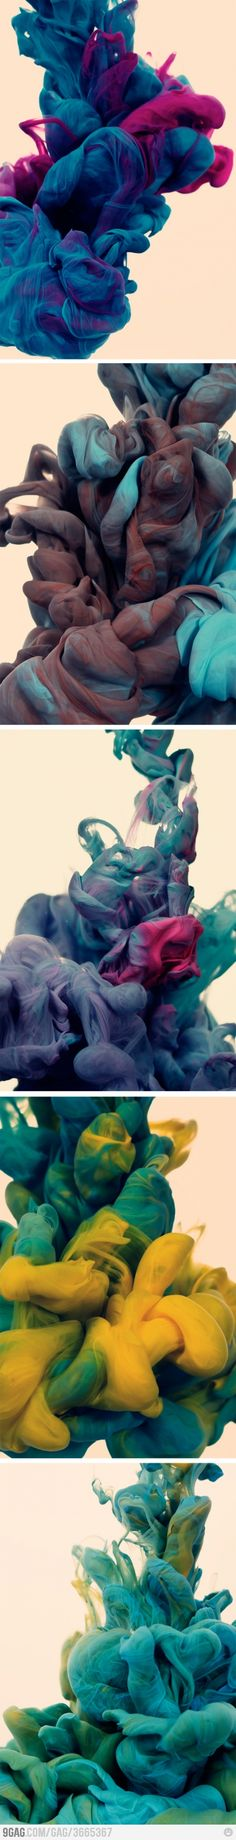 Ink Dropped Into Water On A Black Background By Alberto Seveso - New incredible underwater ink photographs alberto seveso